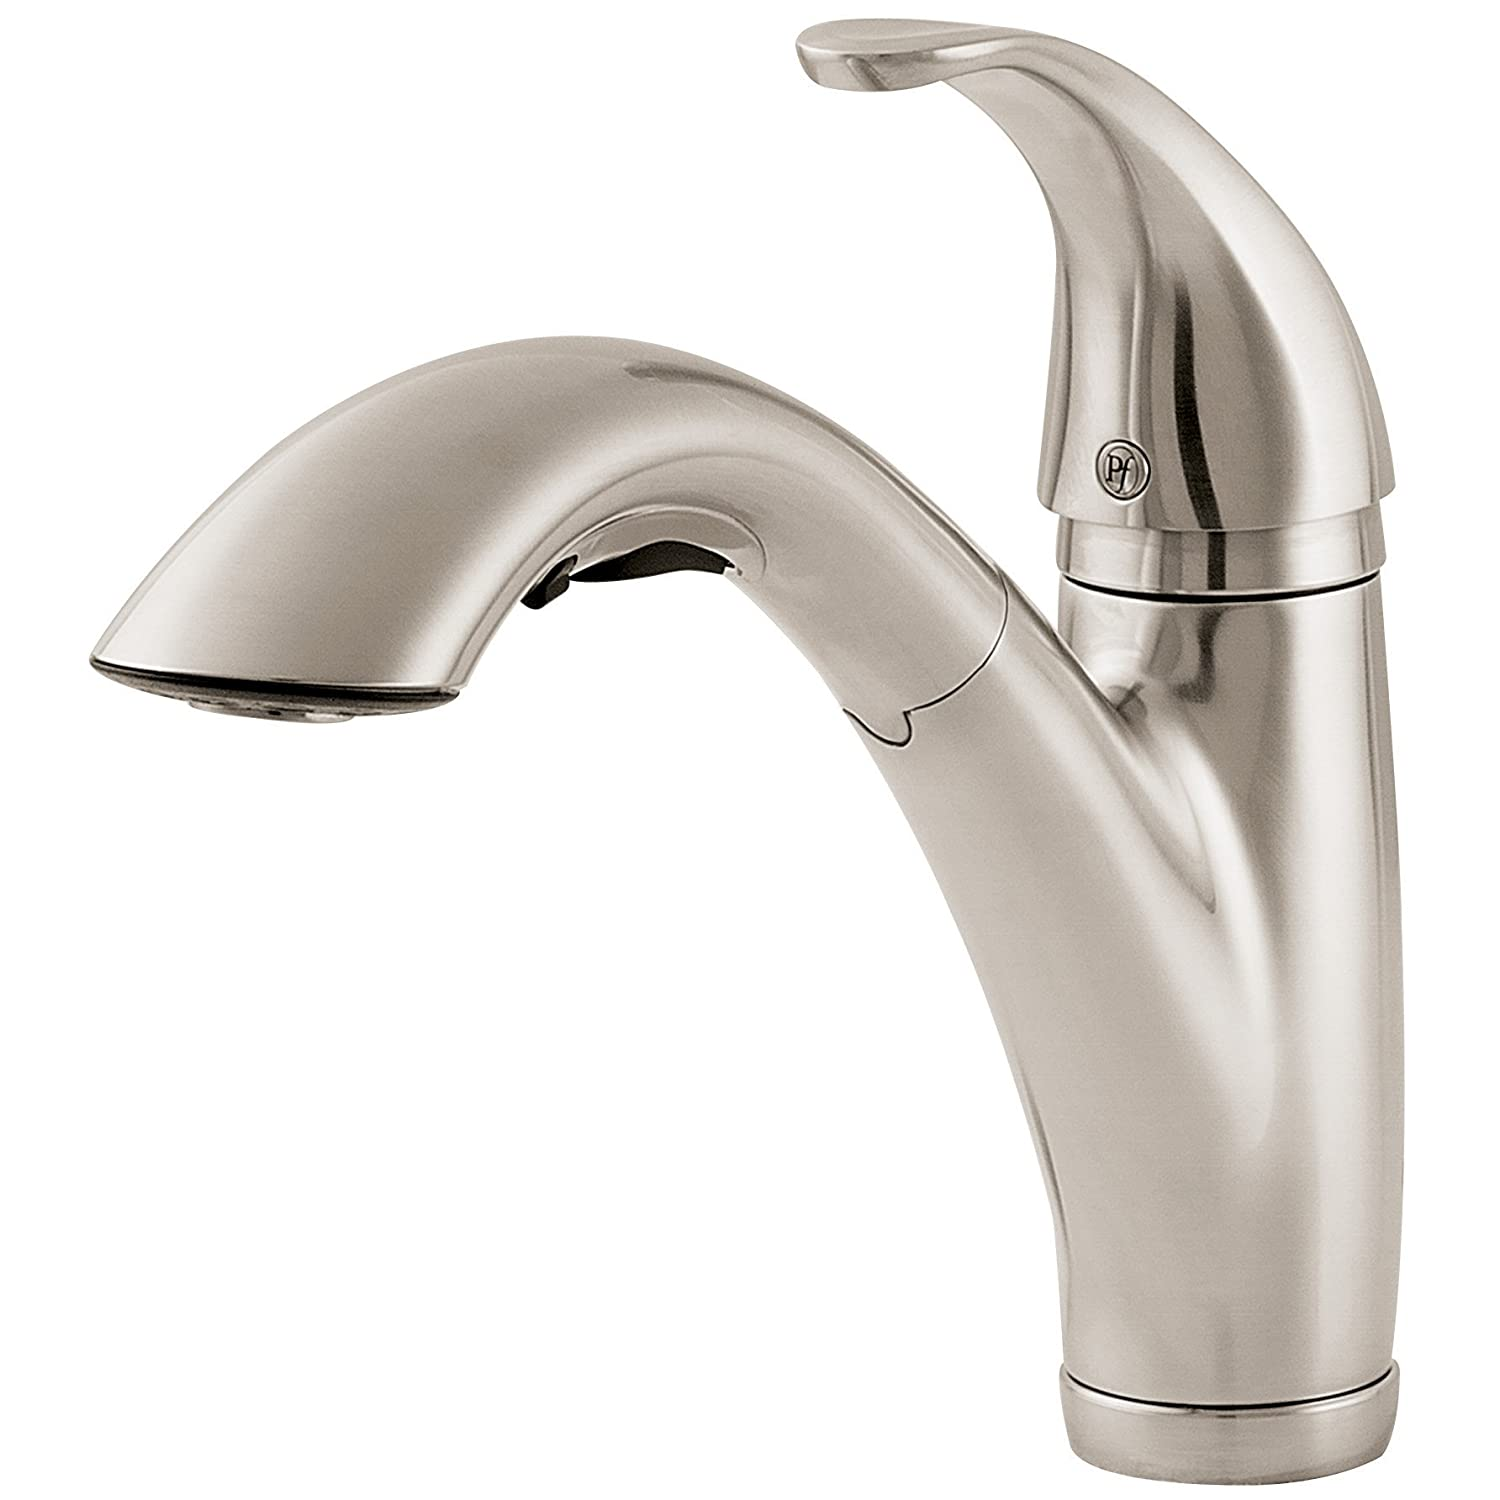 Pfister Parisa 1-Handle Pull-Out Kitchen Faucet, Stainless Steel